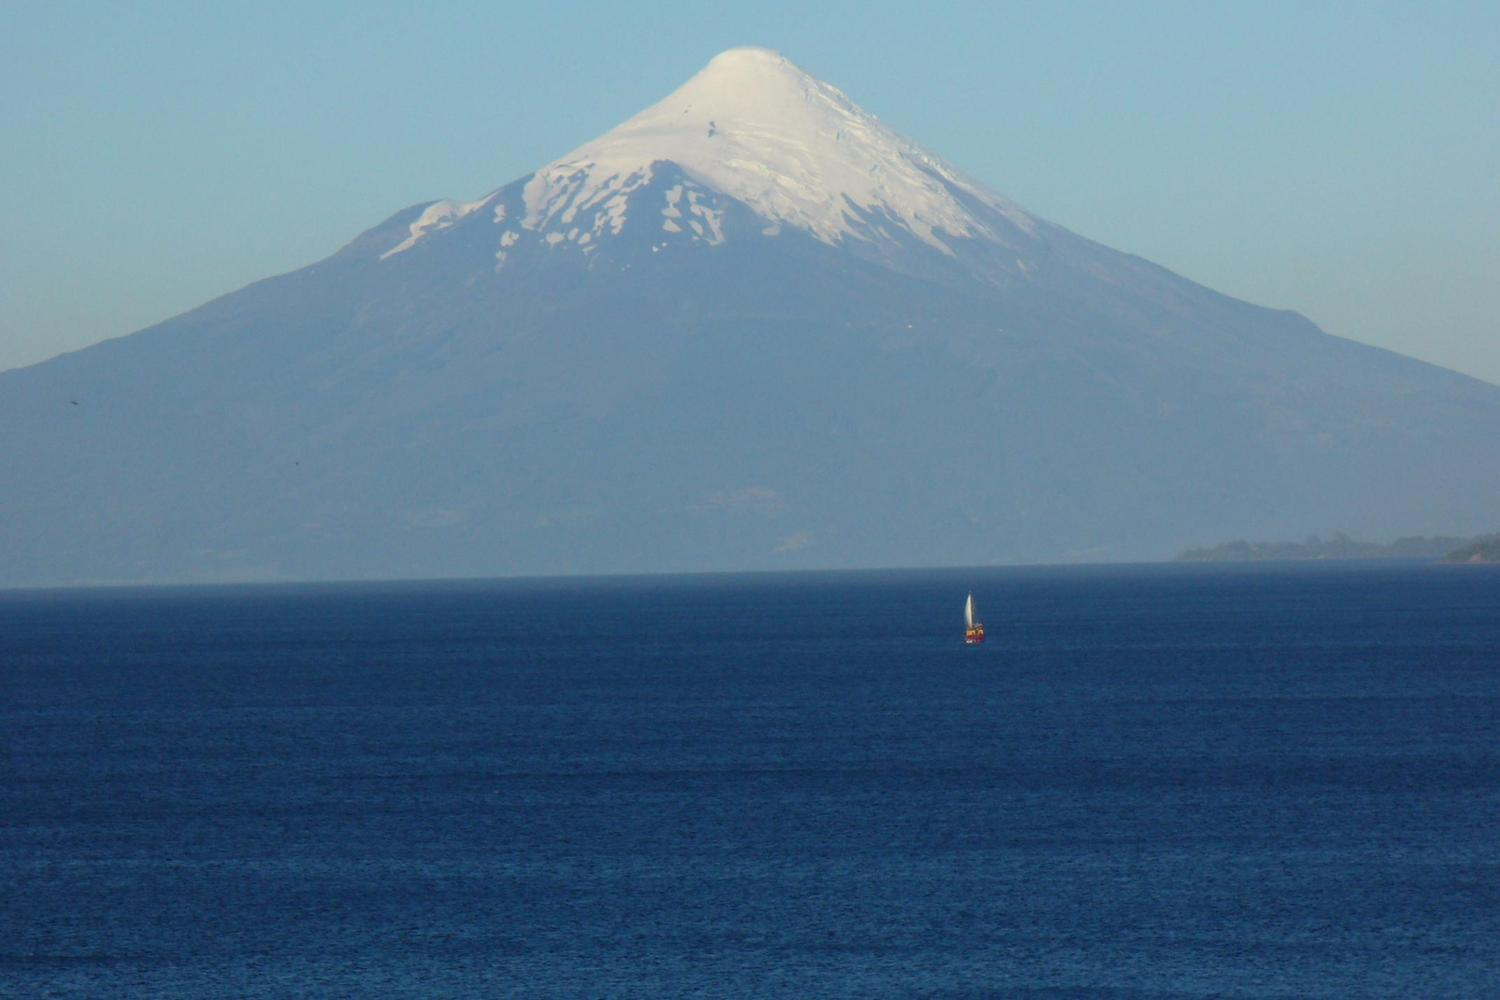 The snowy peak of Osorno Volcano over Lake Llanquihue